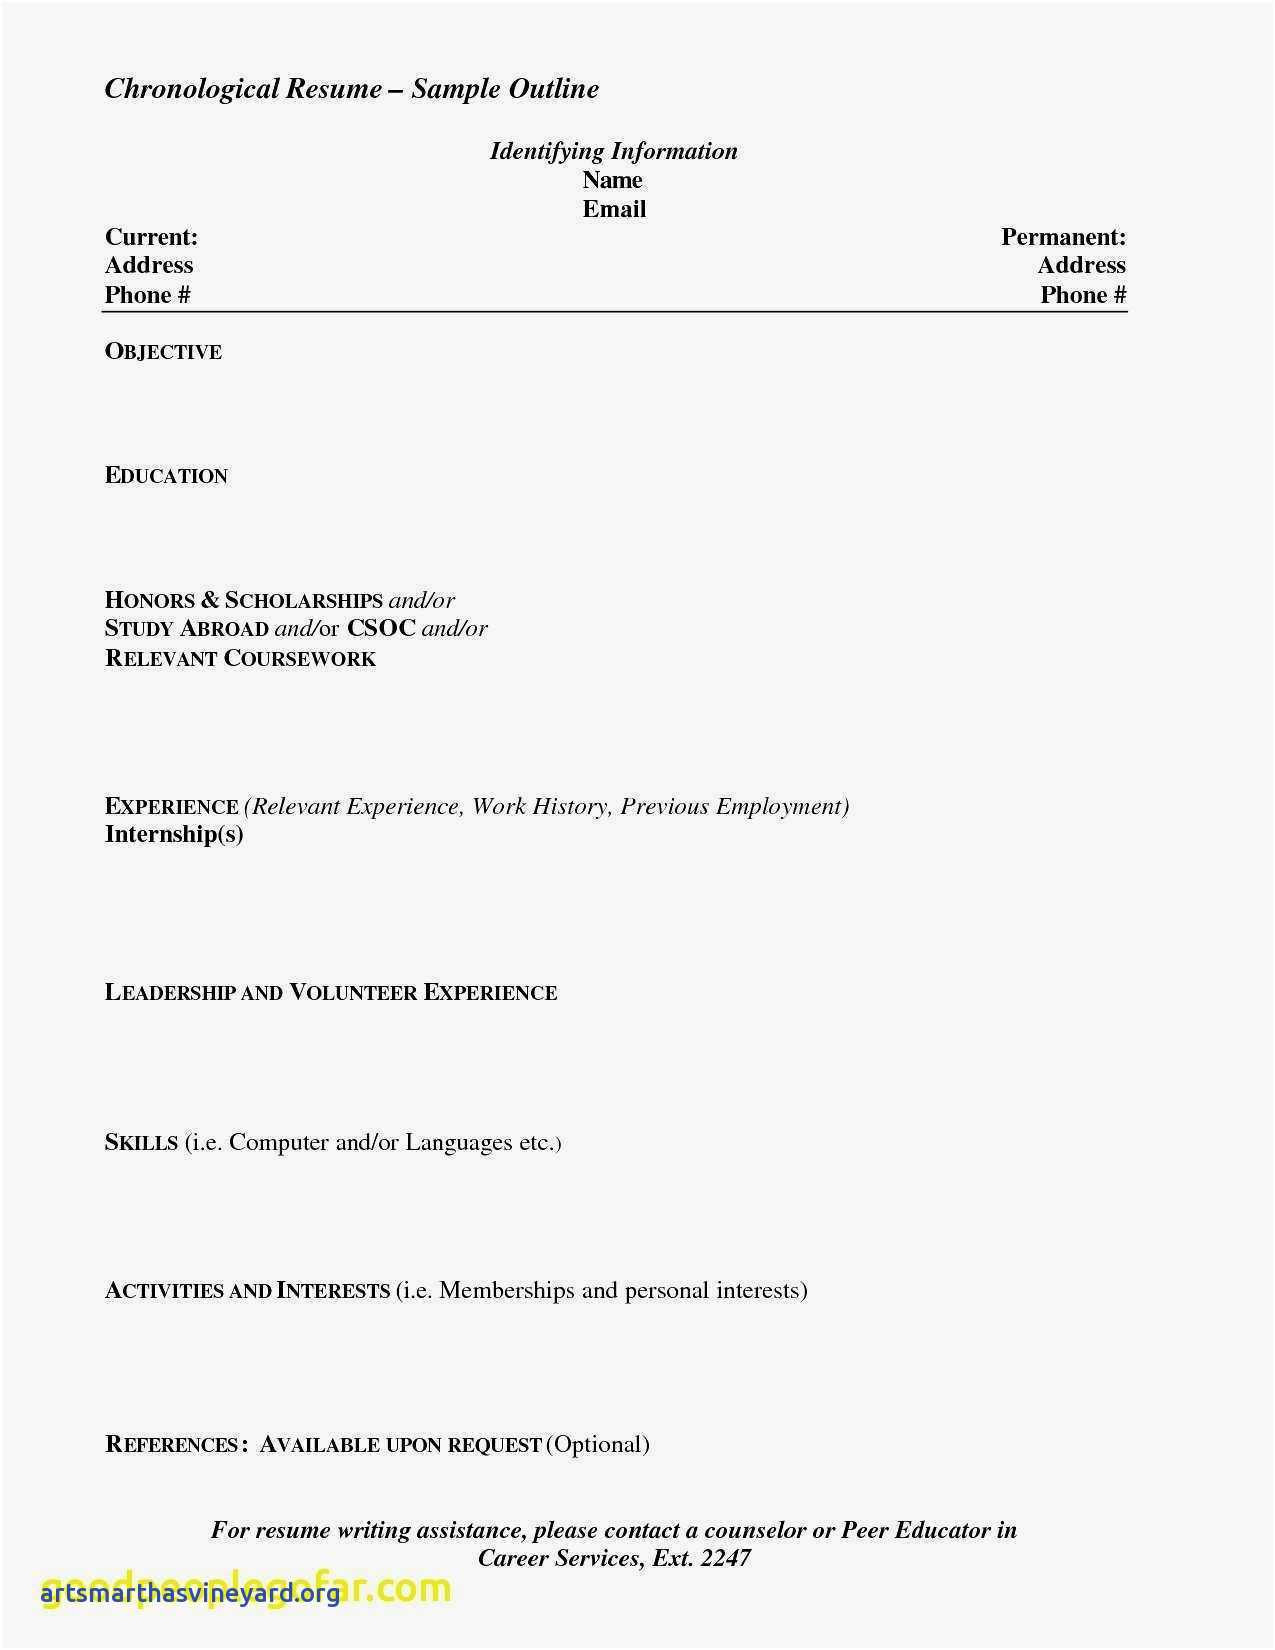 Best Resume Layout 2018 - What Should Be A Resume for A Teenager Valid Unique Resume for